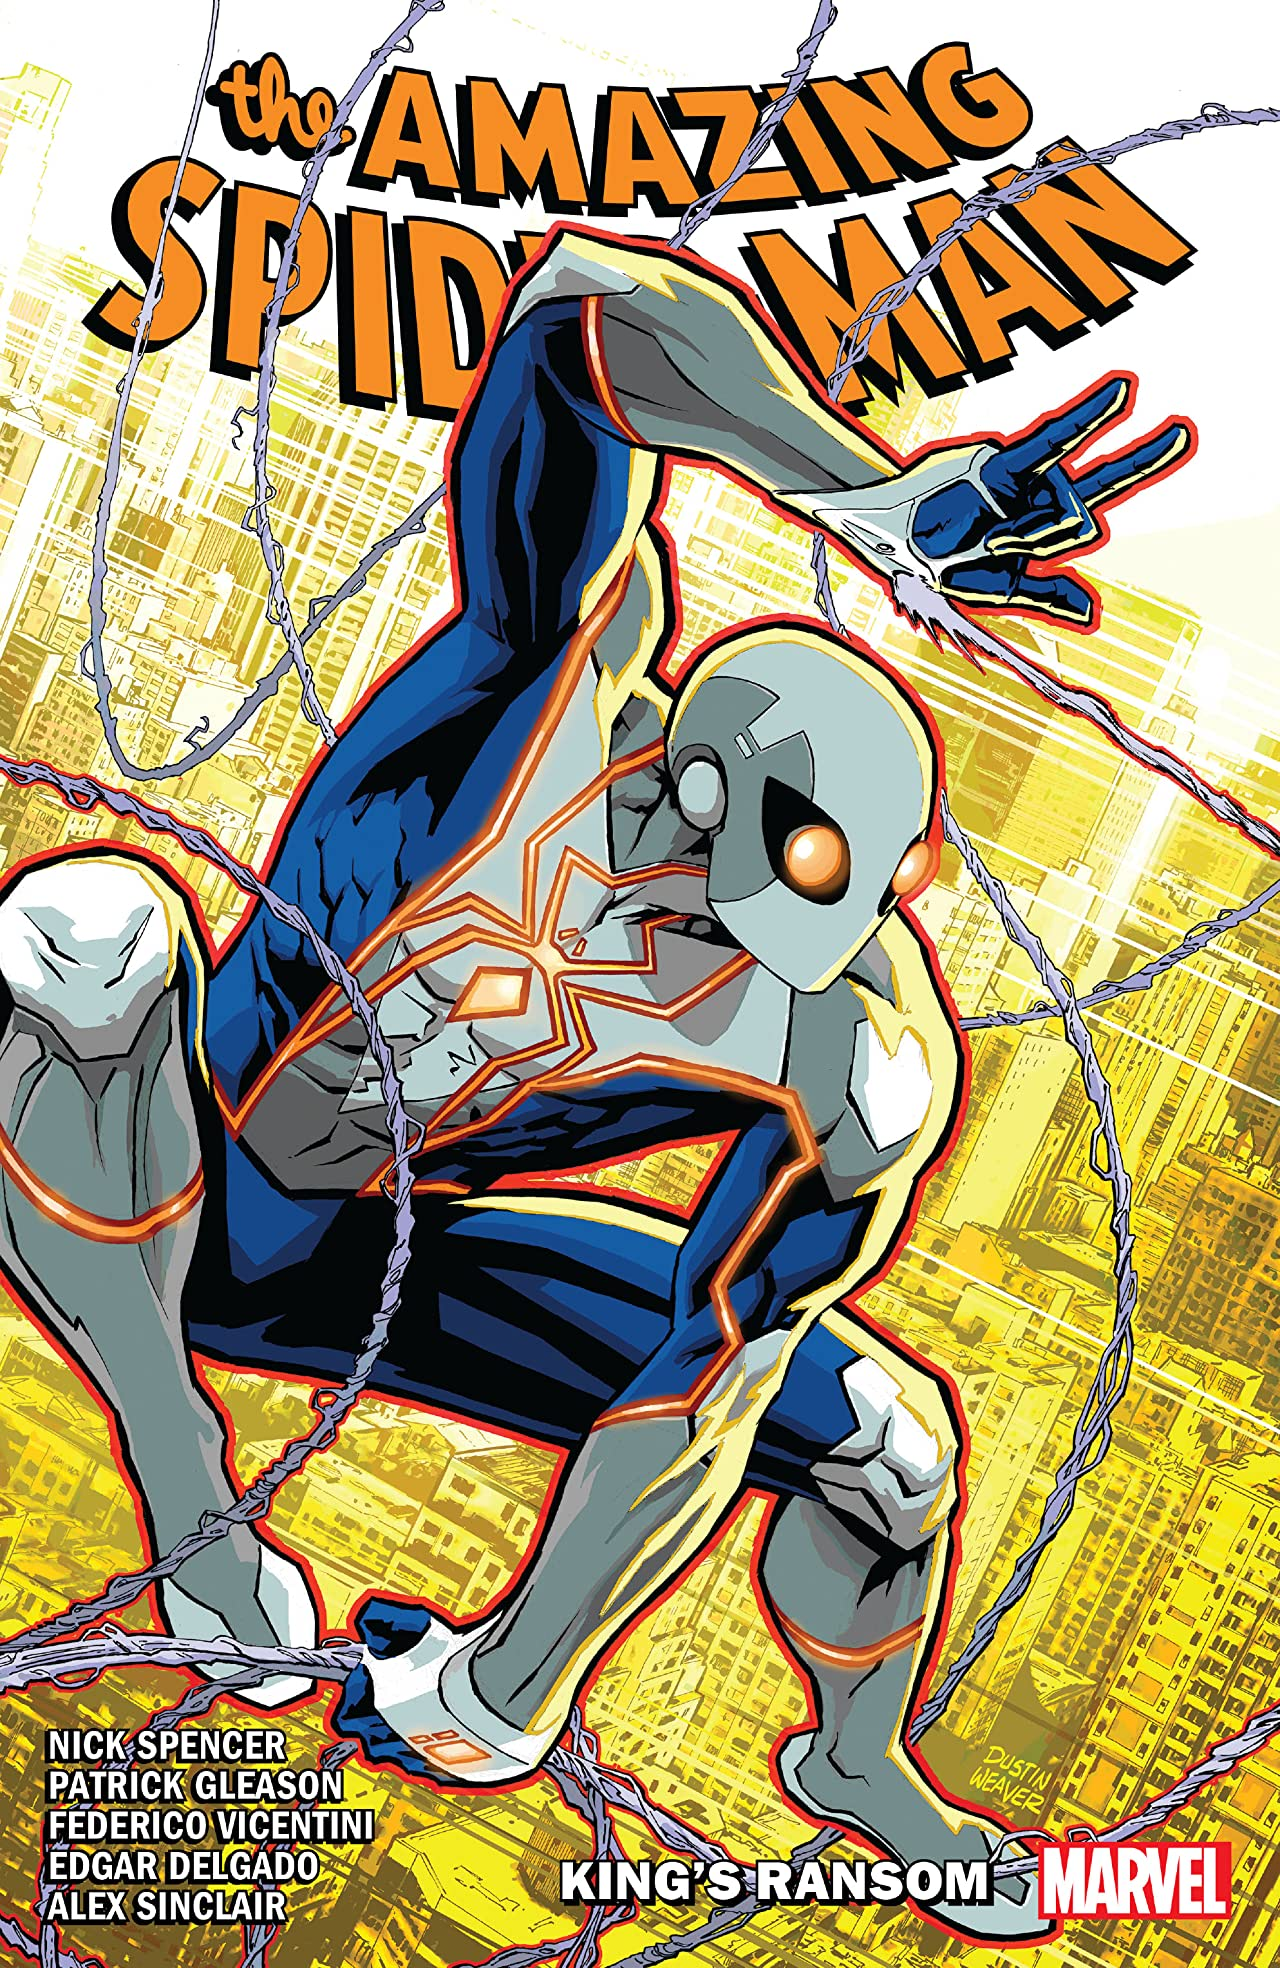 Amazing Spider-Man By Nick Spencer Vol. 13: King's Ransom (Trade Paperback)